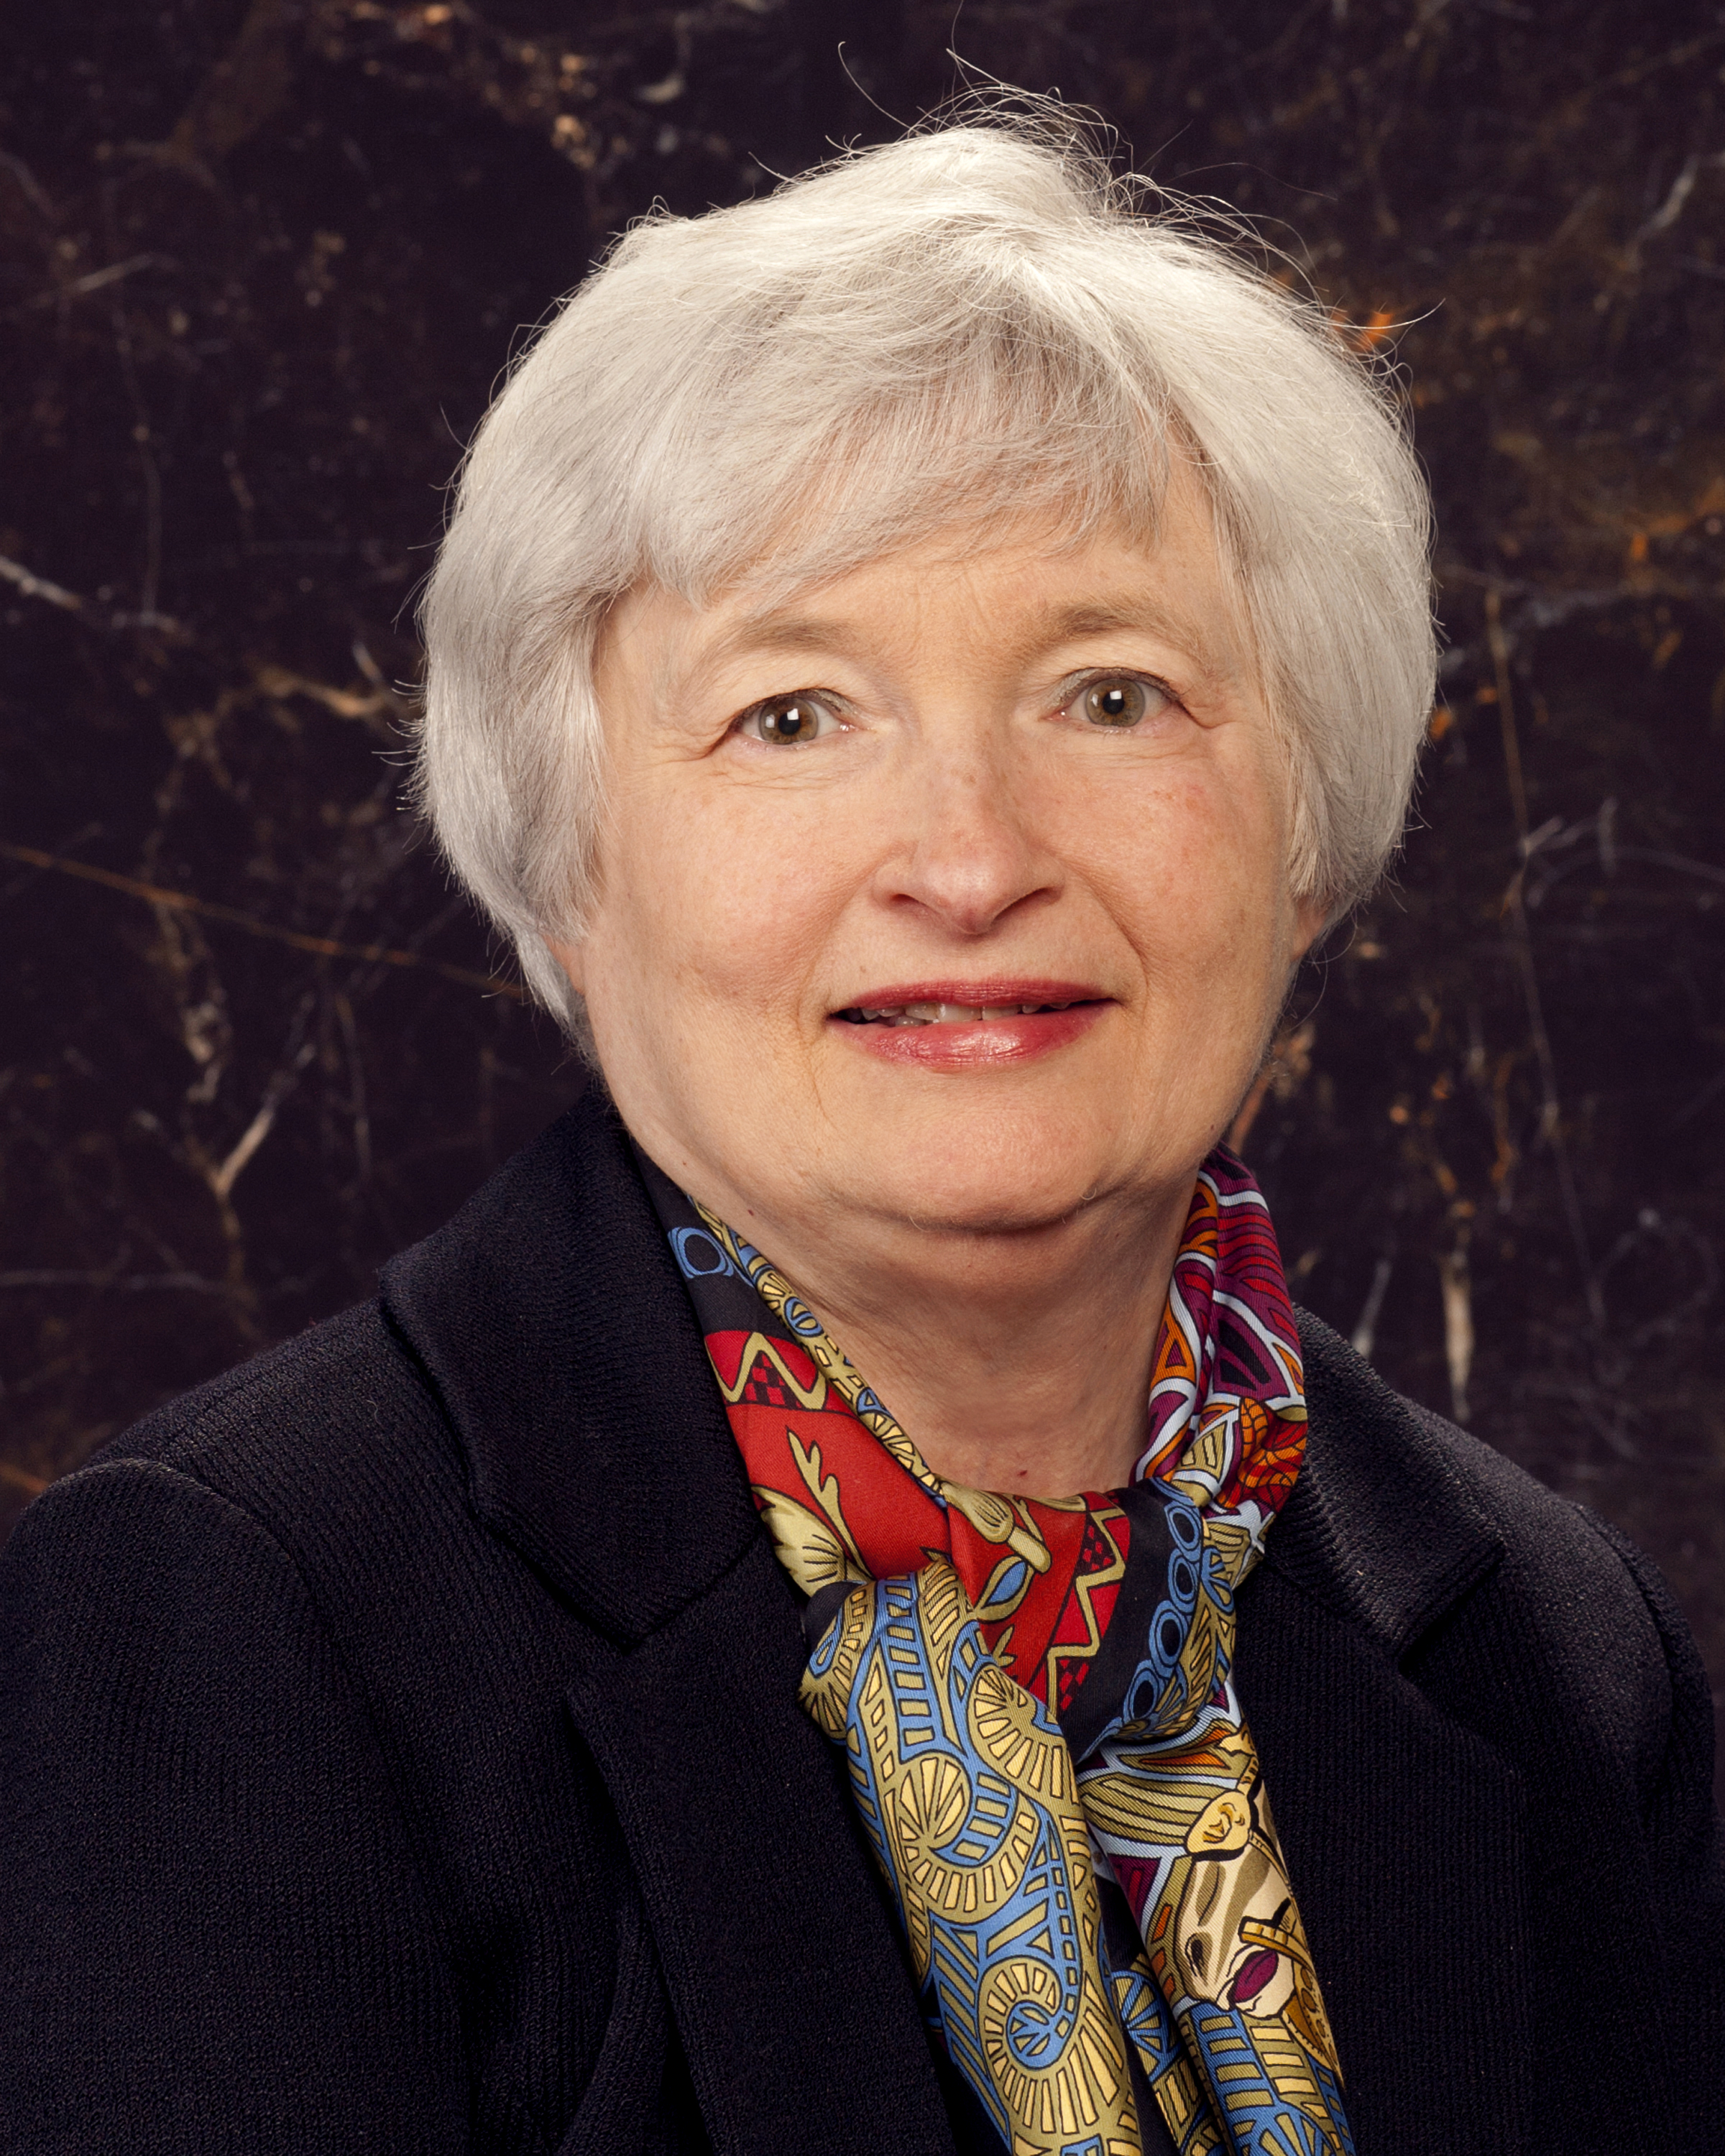 Women Shaping Business - Janet Yellen Confirmed as new Fed Chair